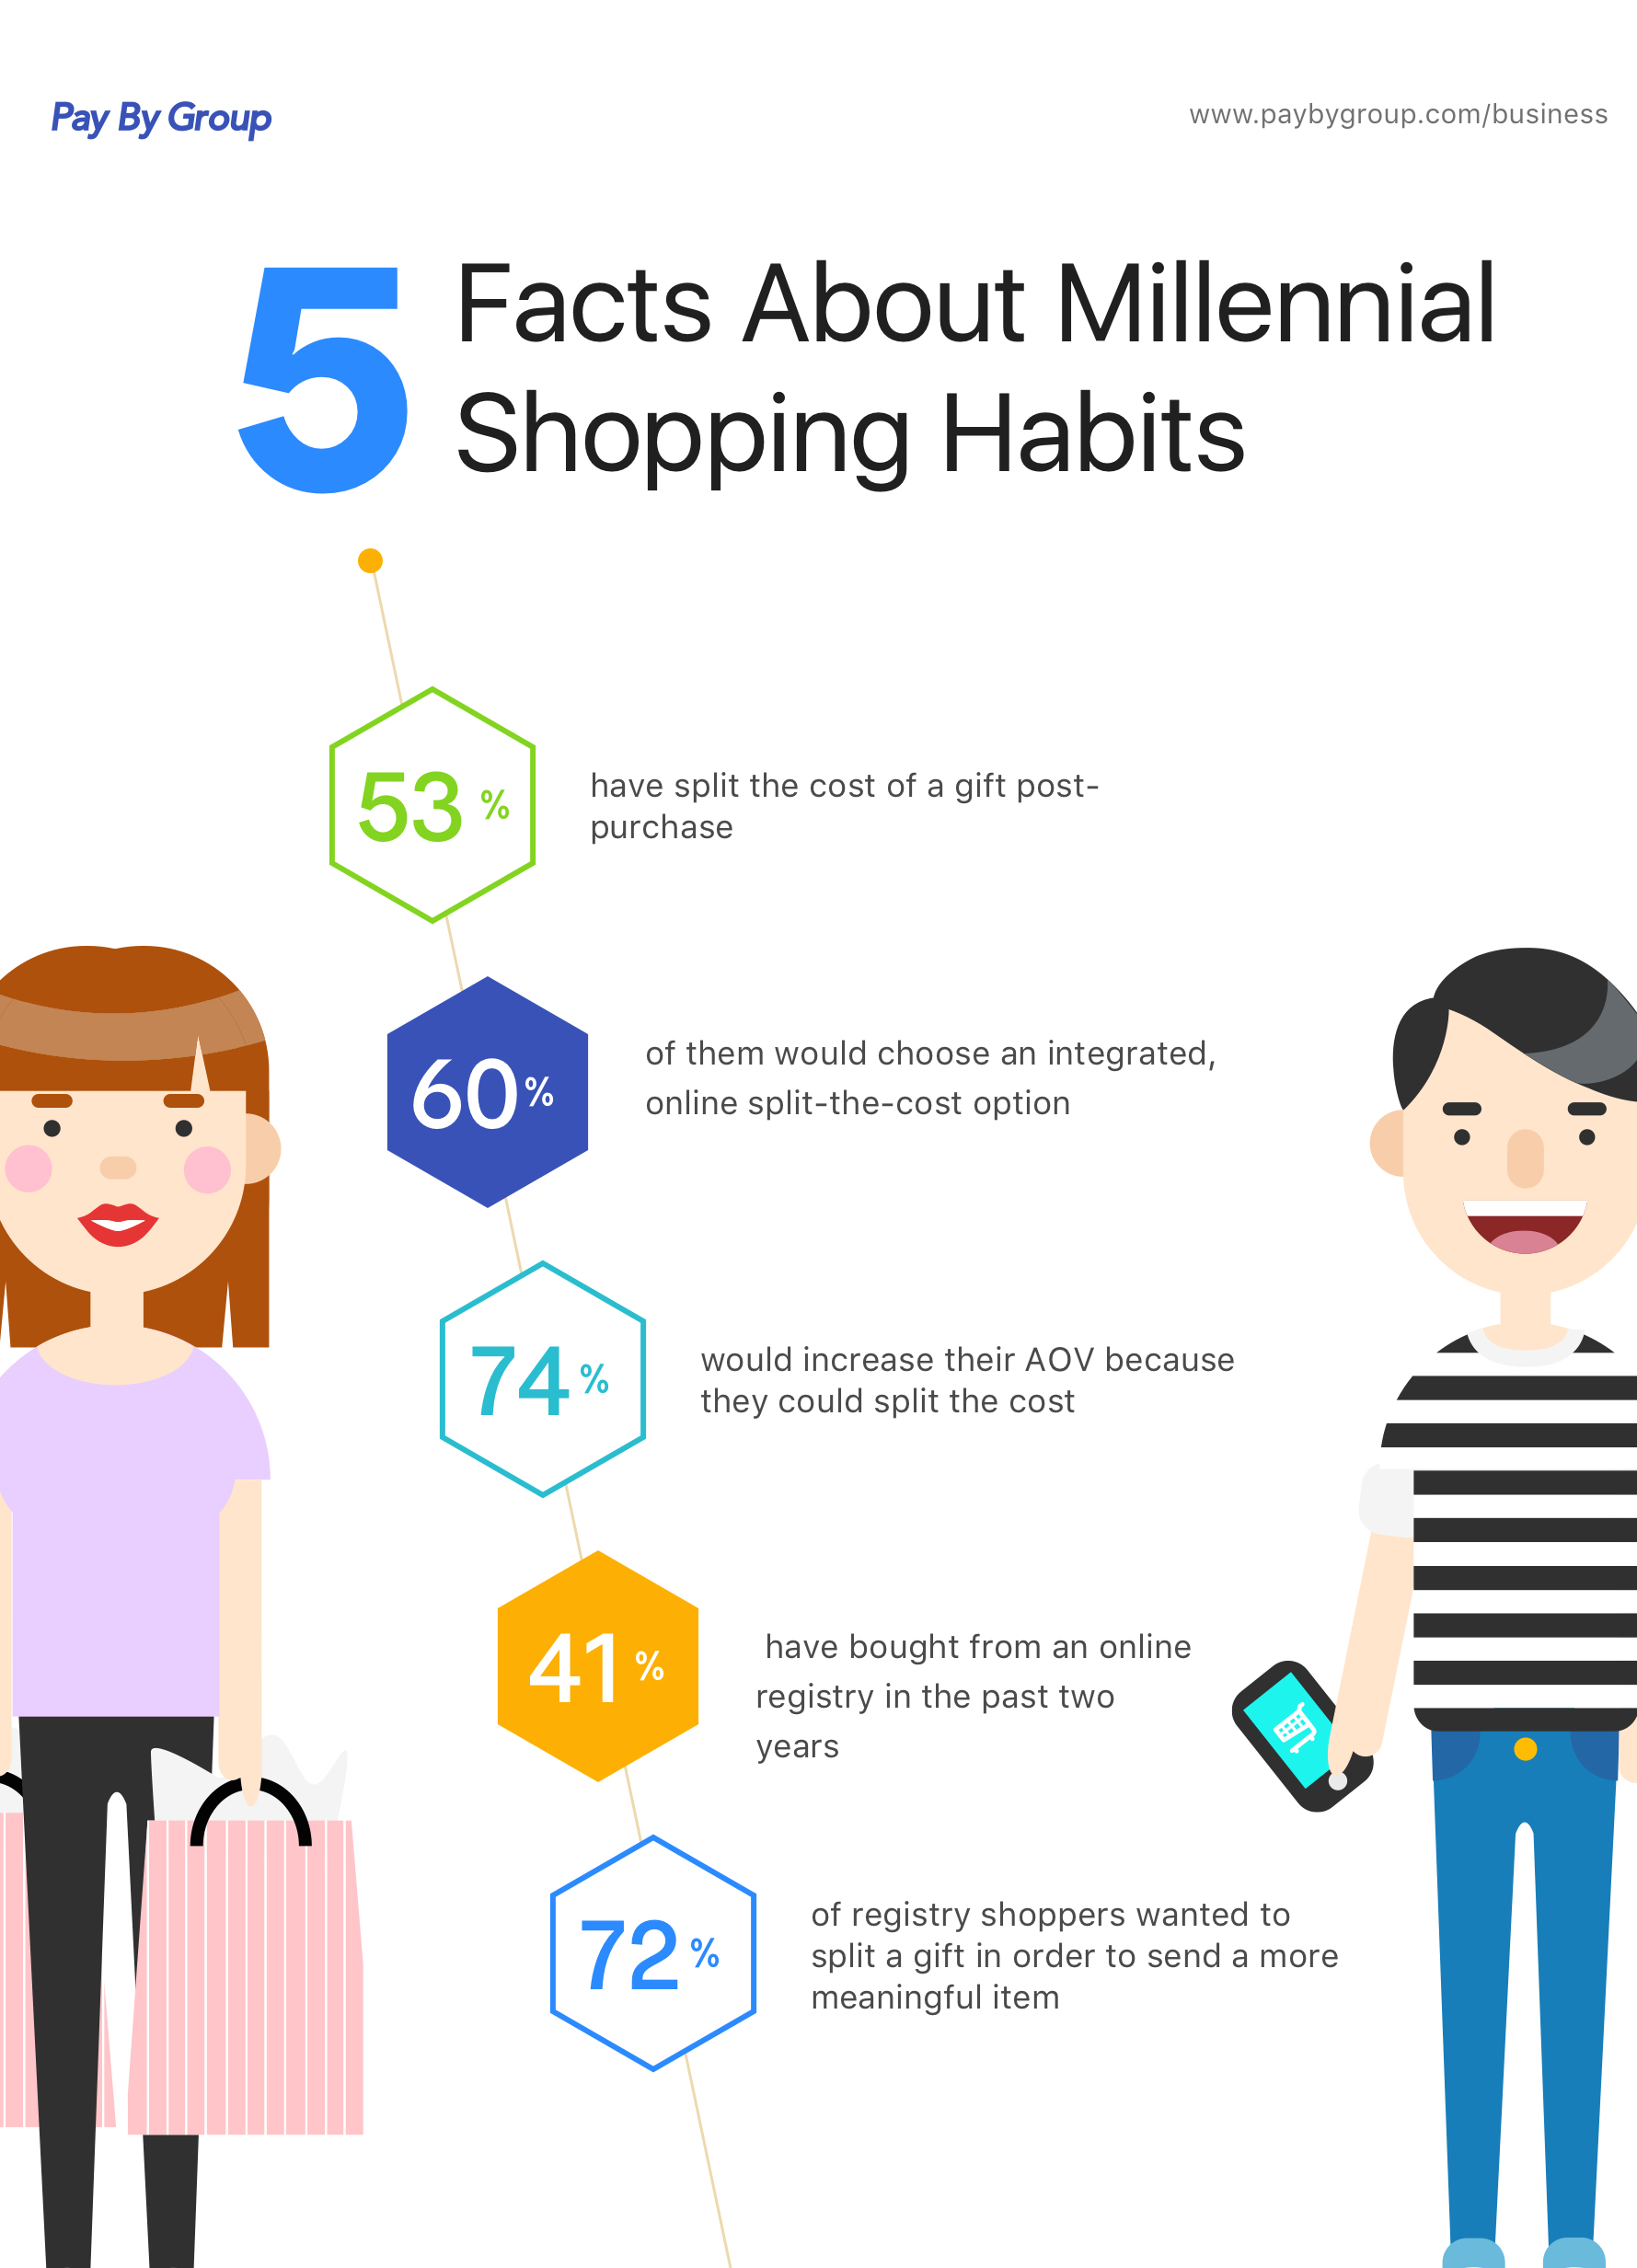 Pay By Group Reveals Millennial Shopping Habits Survey Results